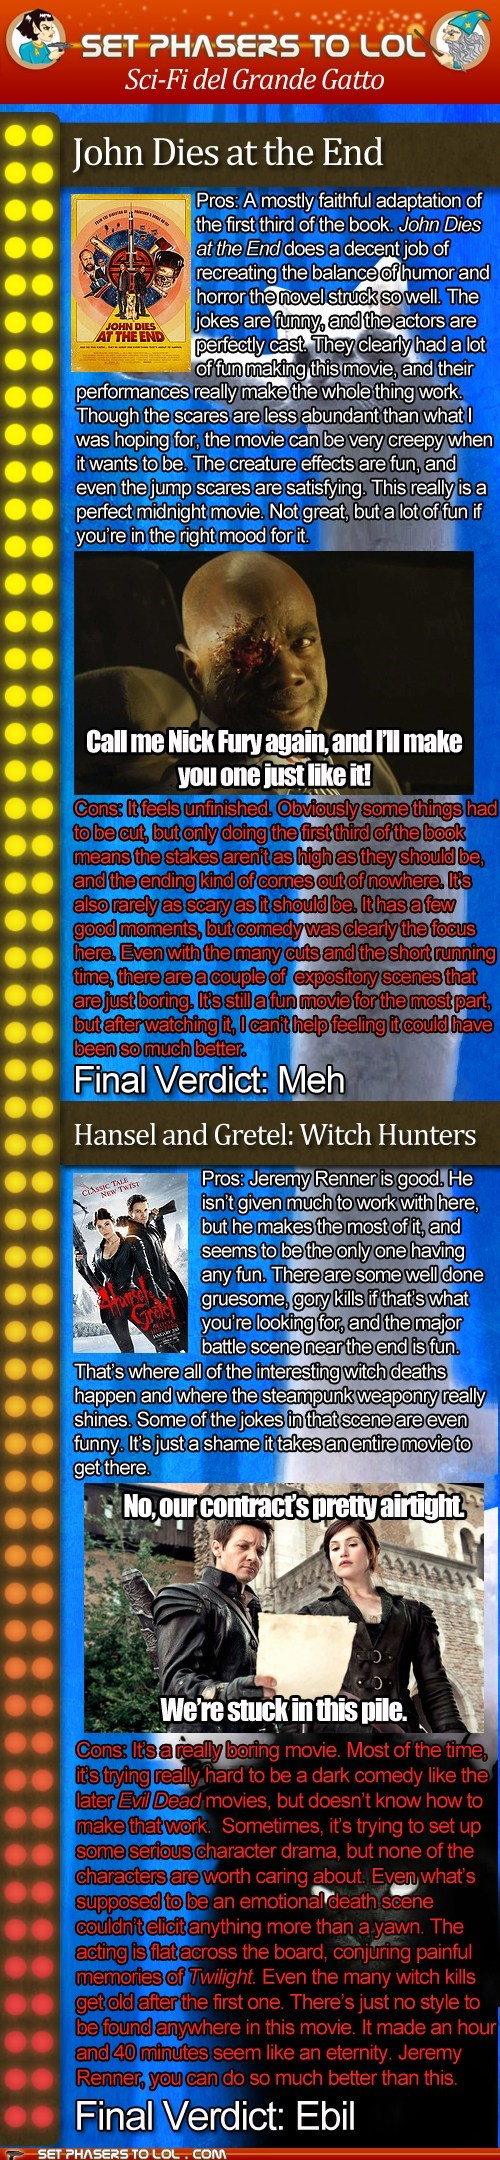 reviews fantasy hansel and gretel witch hunters john dies at the end movies gemma arterton Jeremy renner sci fi grande gatto - 7004411136